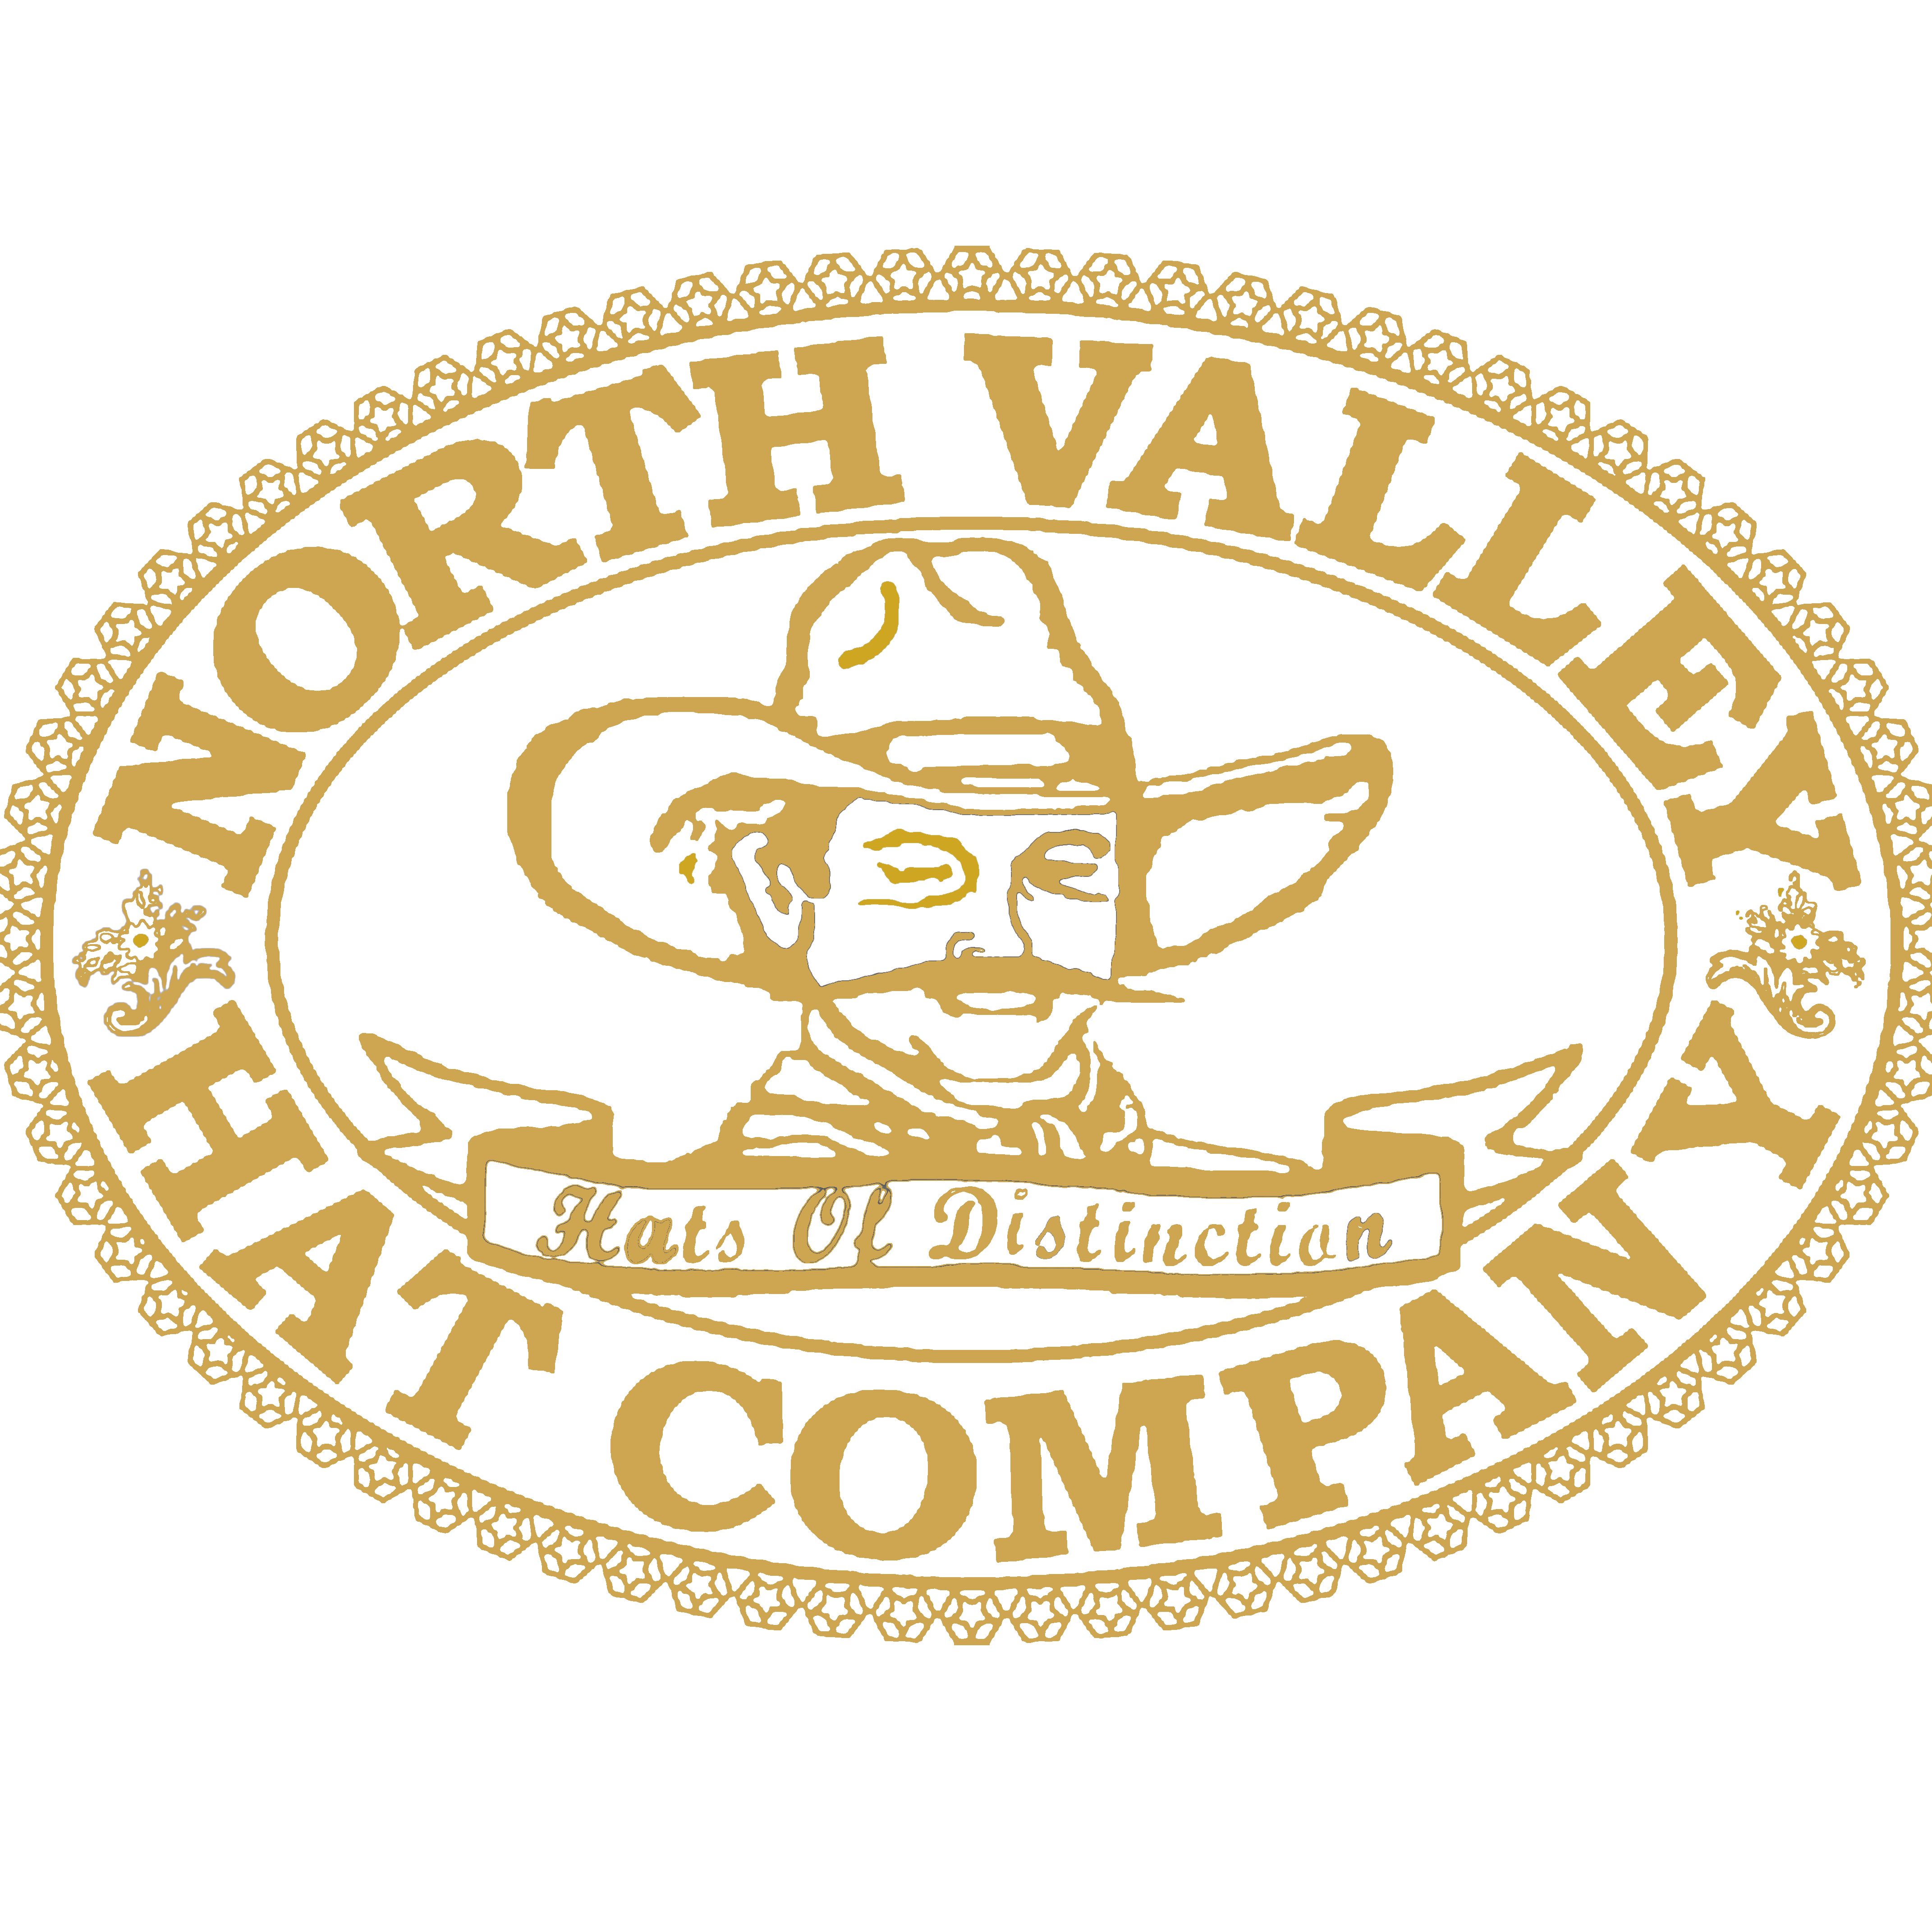 North Valley Hat Company - Salem, OR - Apparel Stores